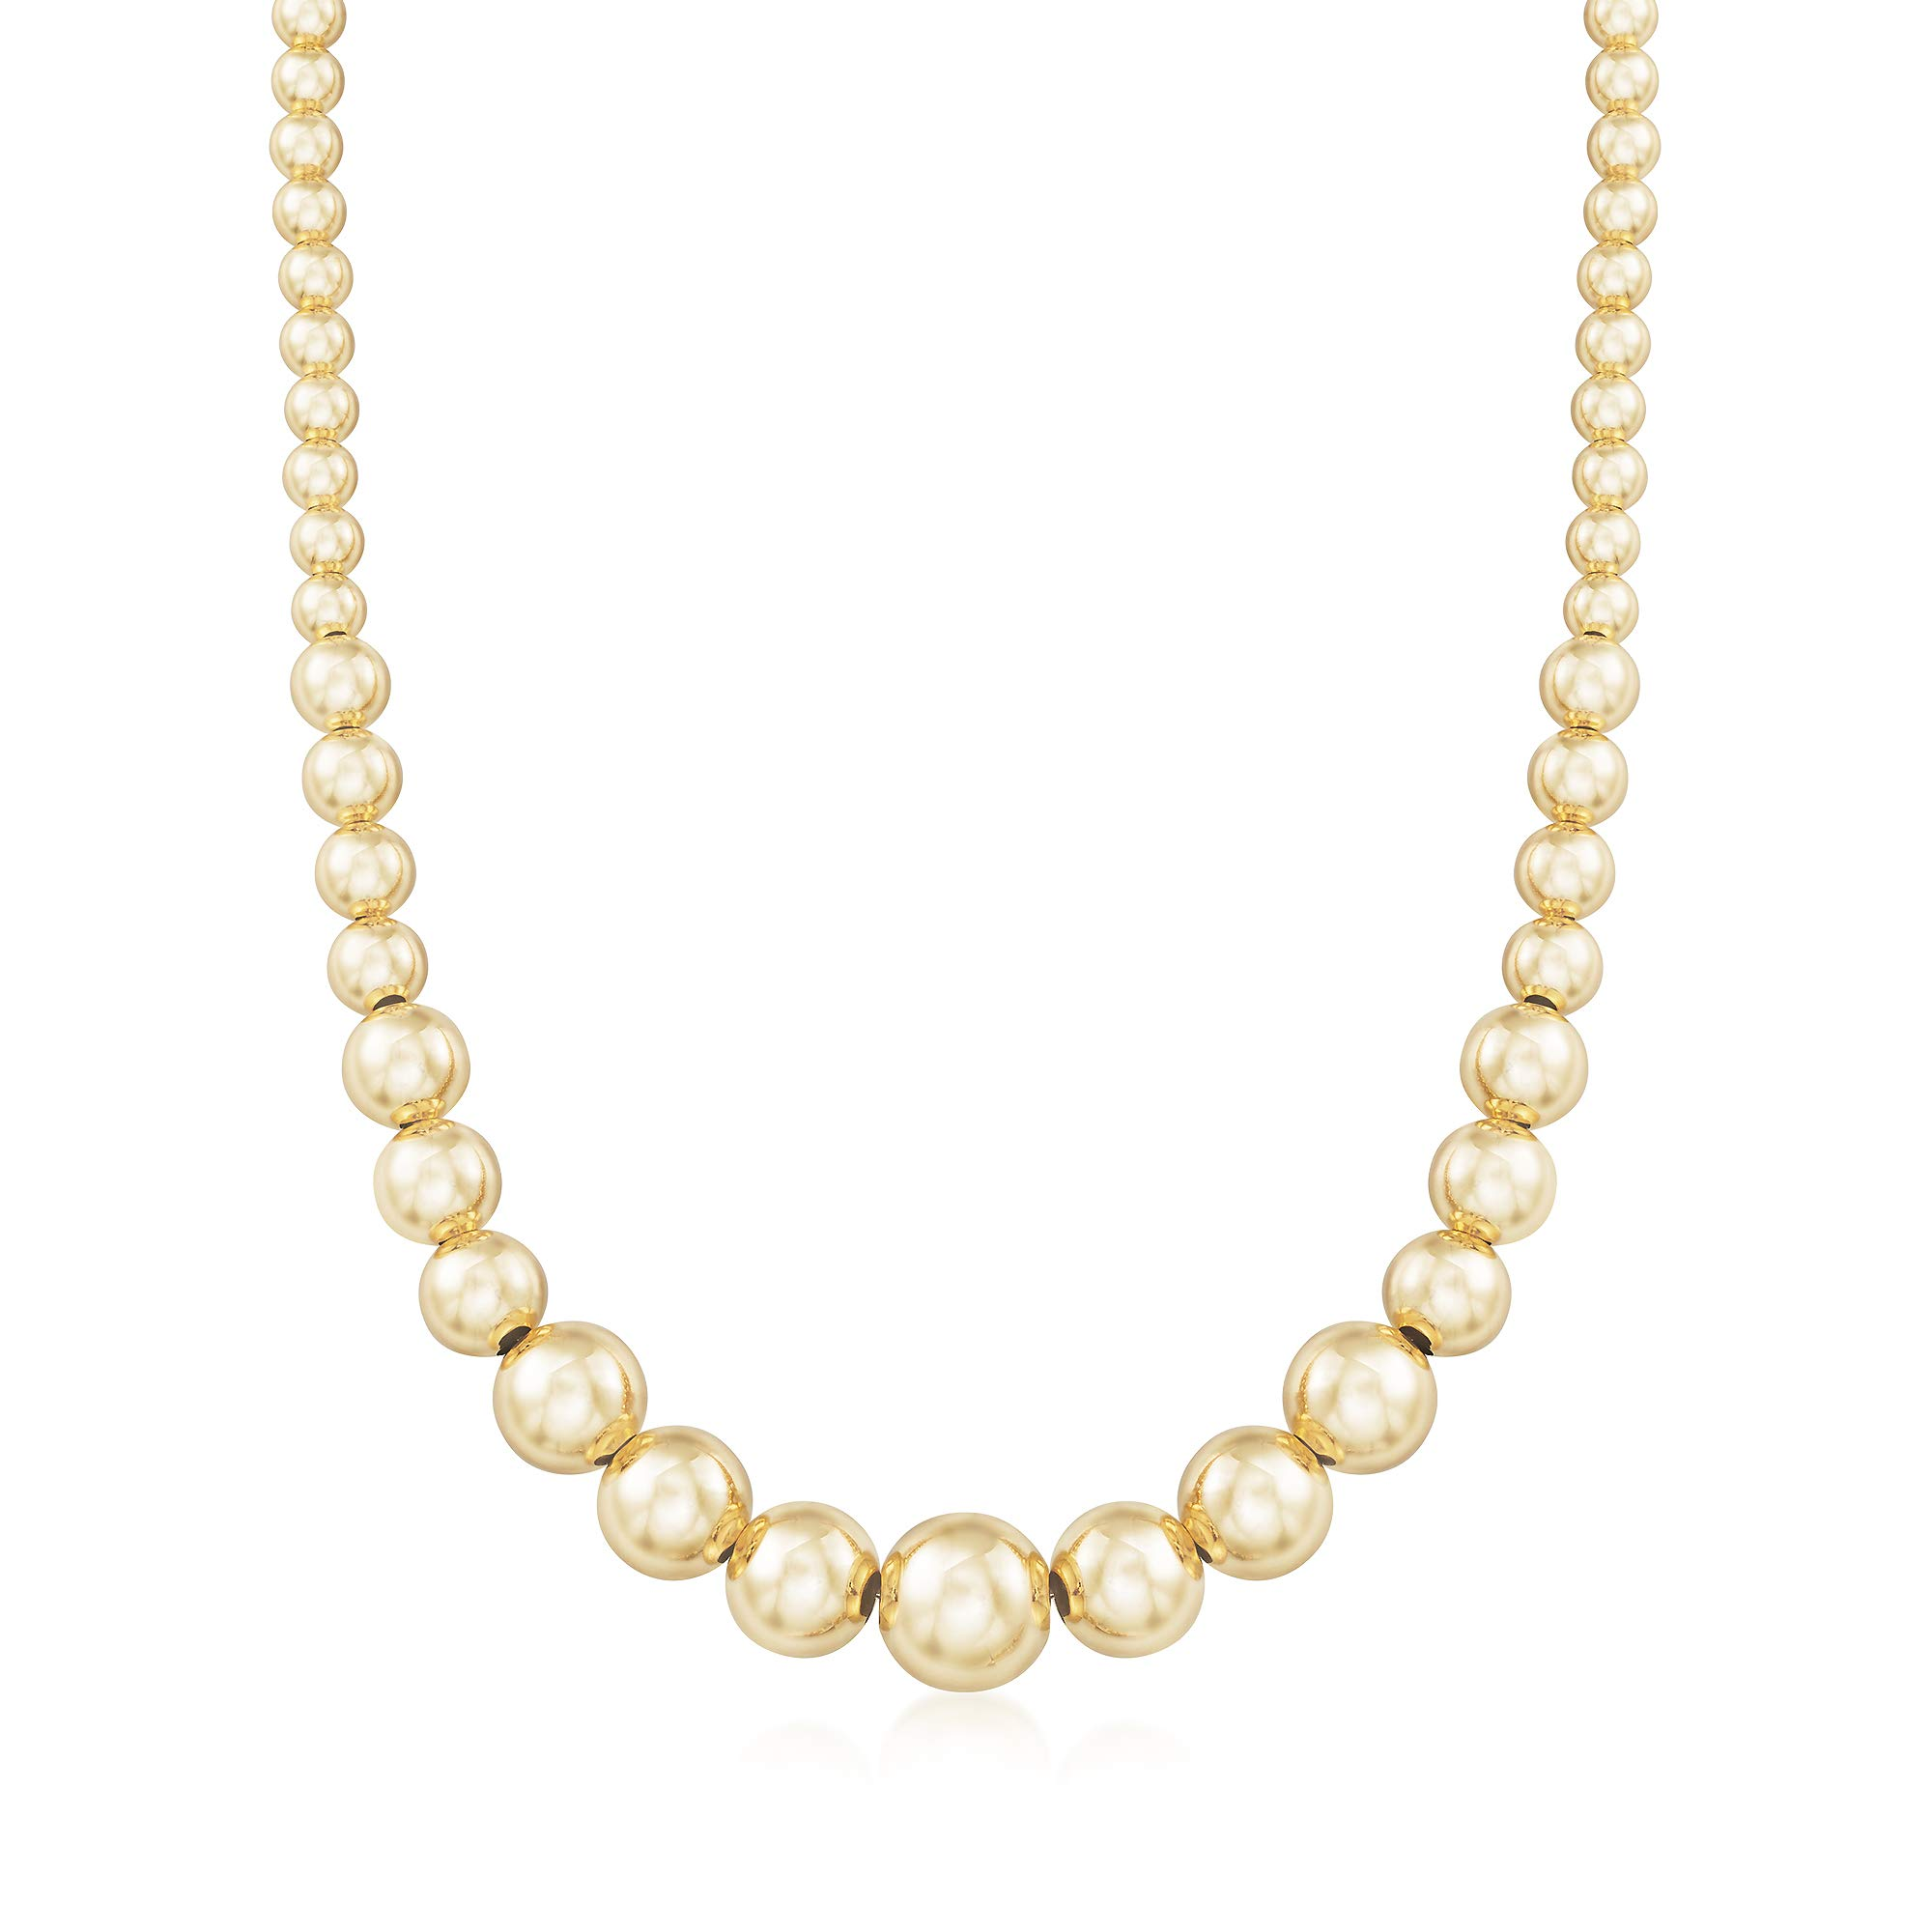 Ross-Simons Italian 6-14mm 18kt Gold Over Sterling Silver Graduated Bead Necklace by Ross-Simons